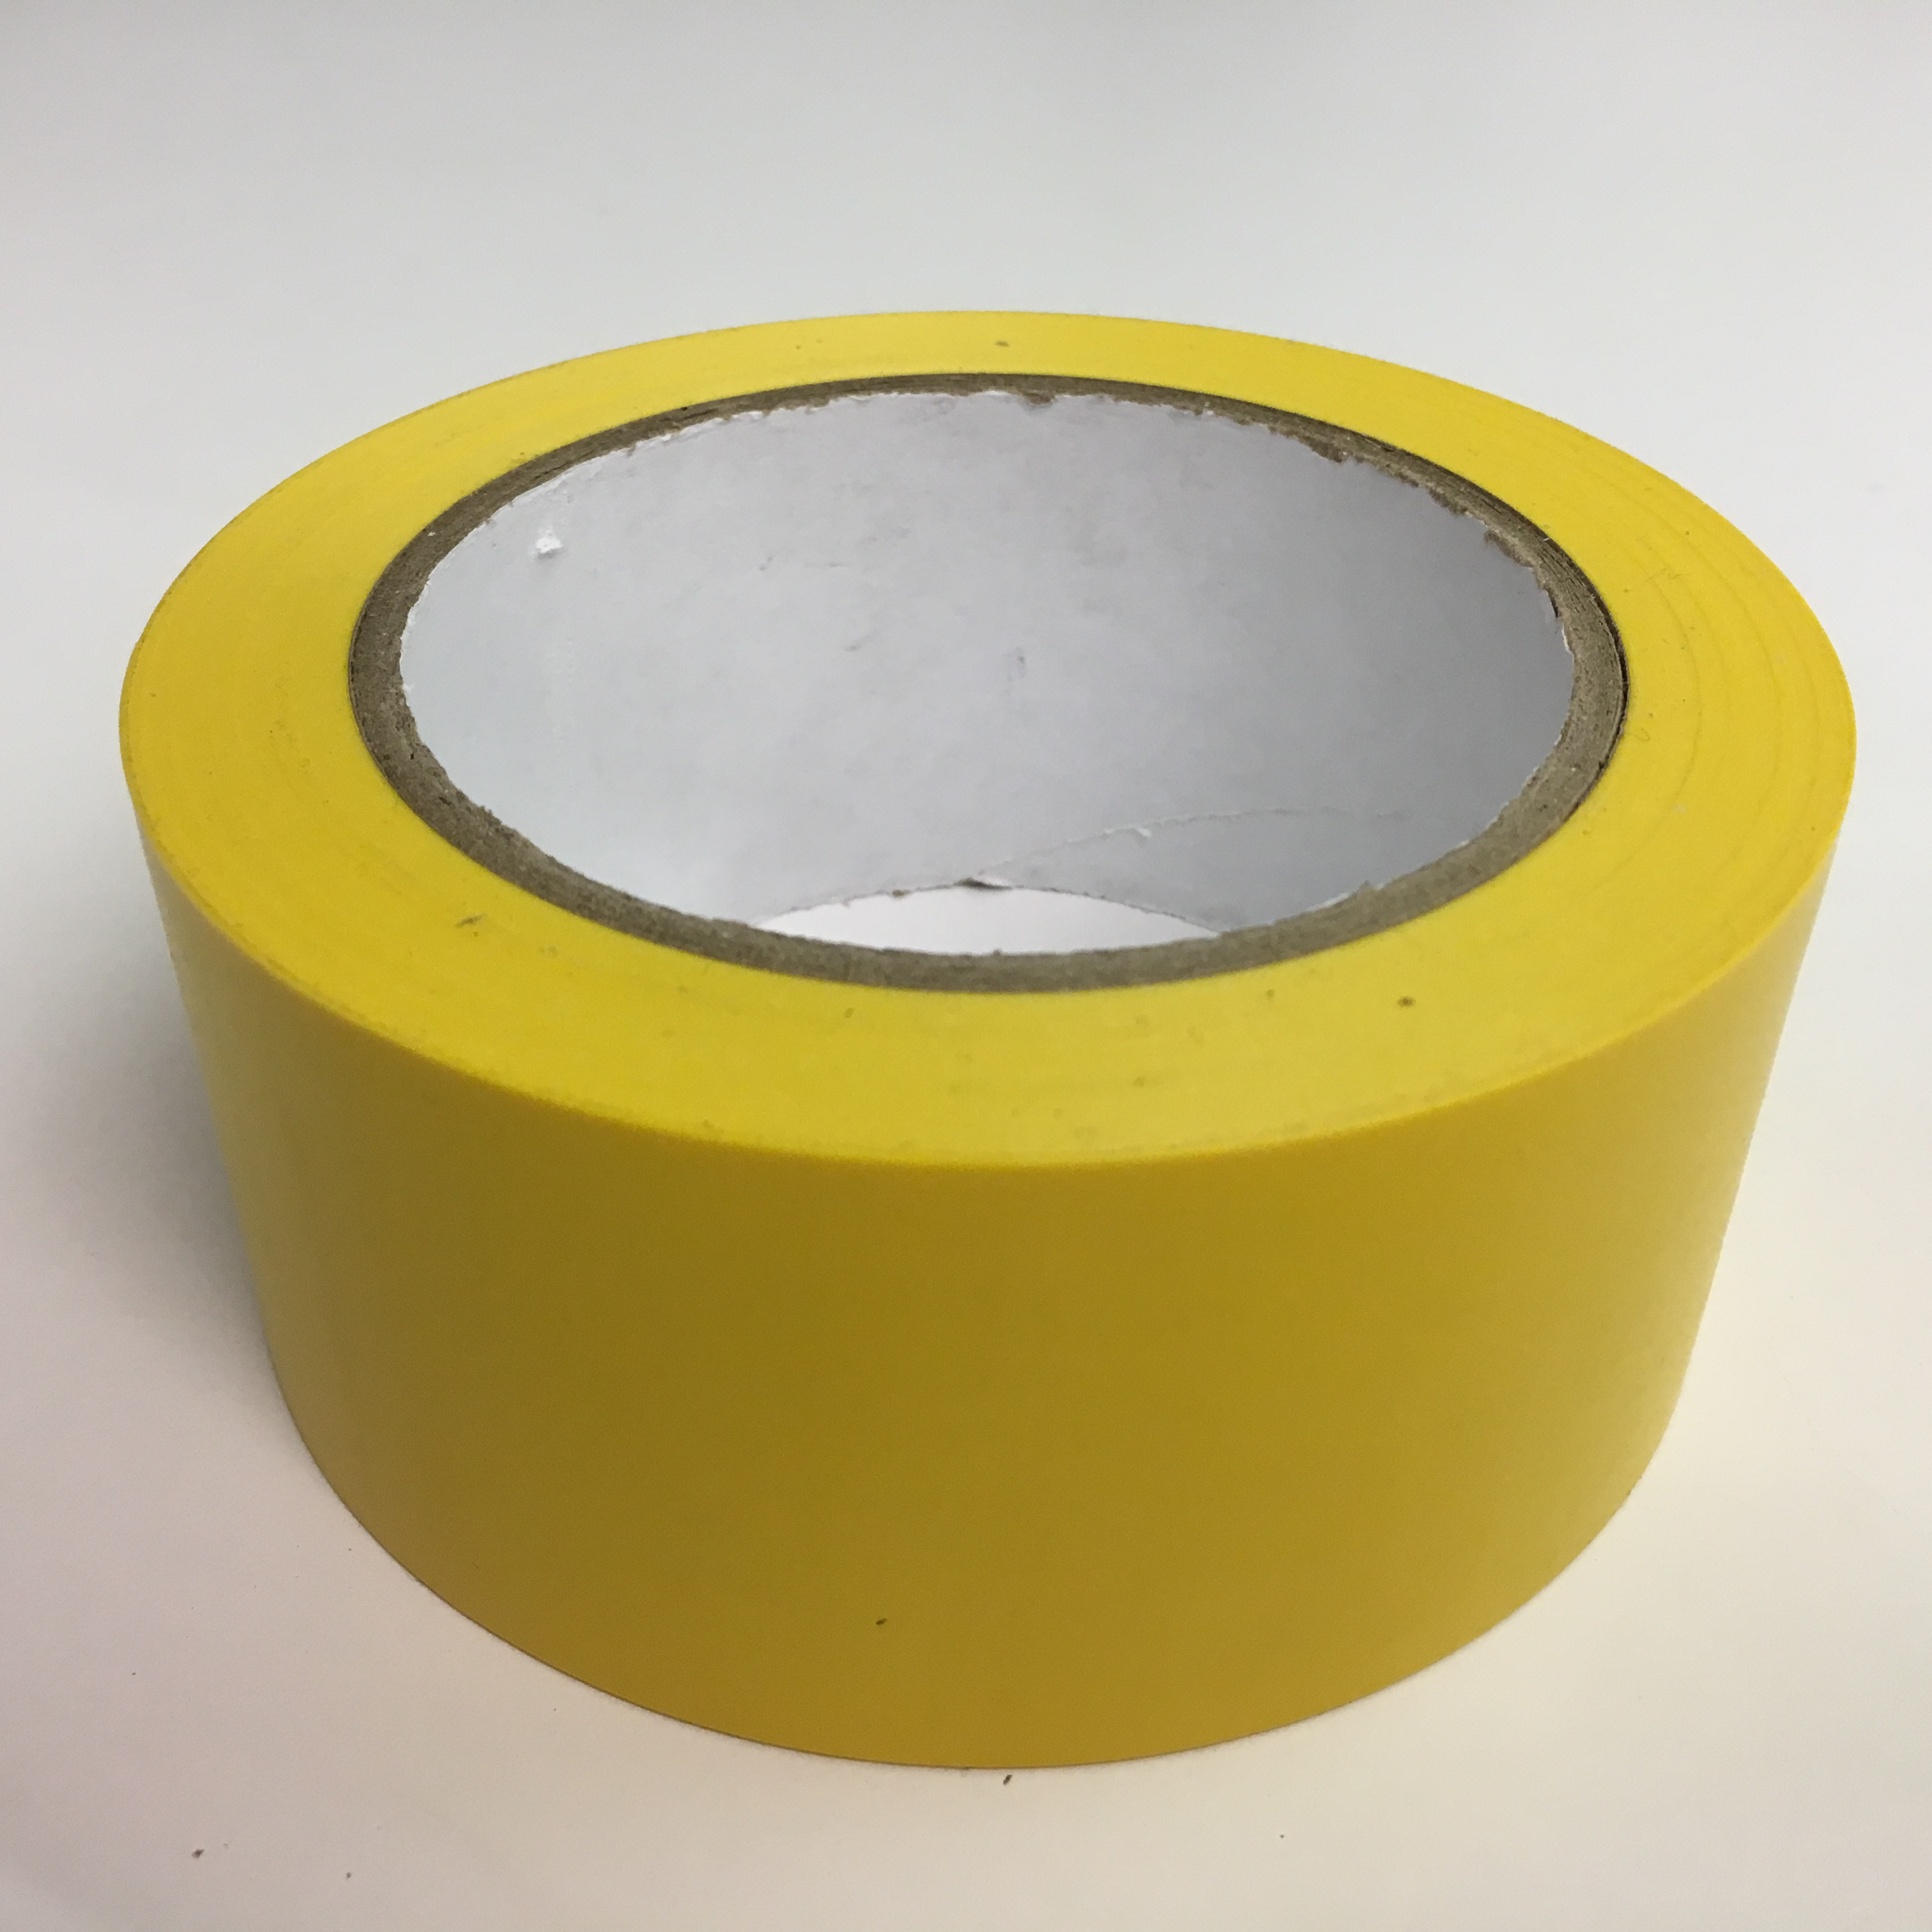 ltd ss pvc floor double pte marking floors tape packaging